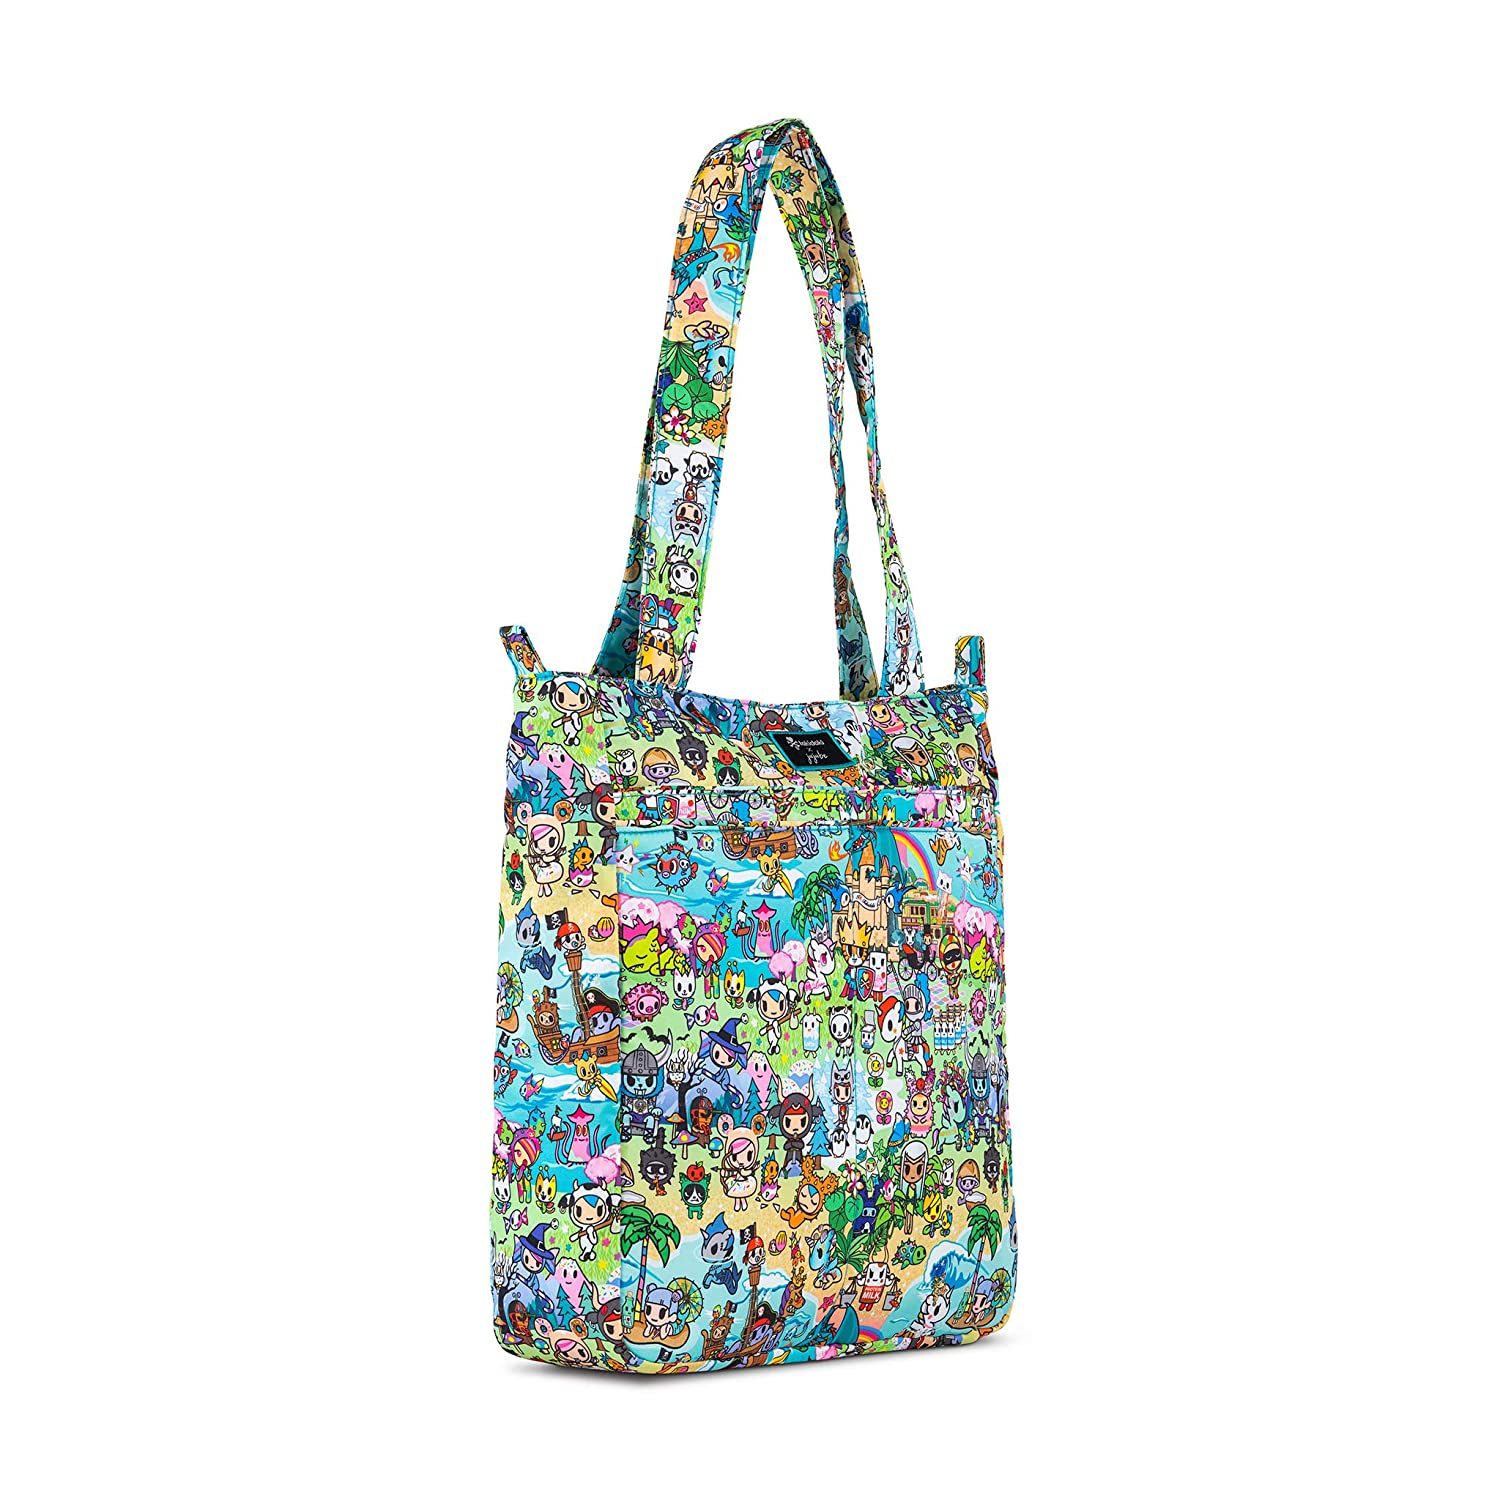 Cape Cod Coastal Collection JuJuBe Be Light Everyday Lightweight Zippered Tote Bag